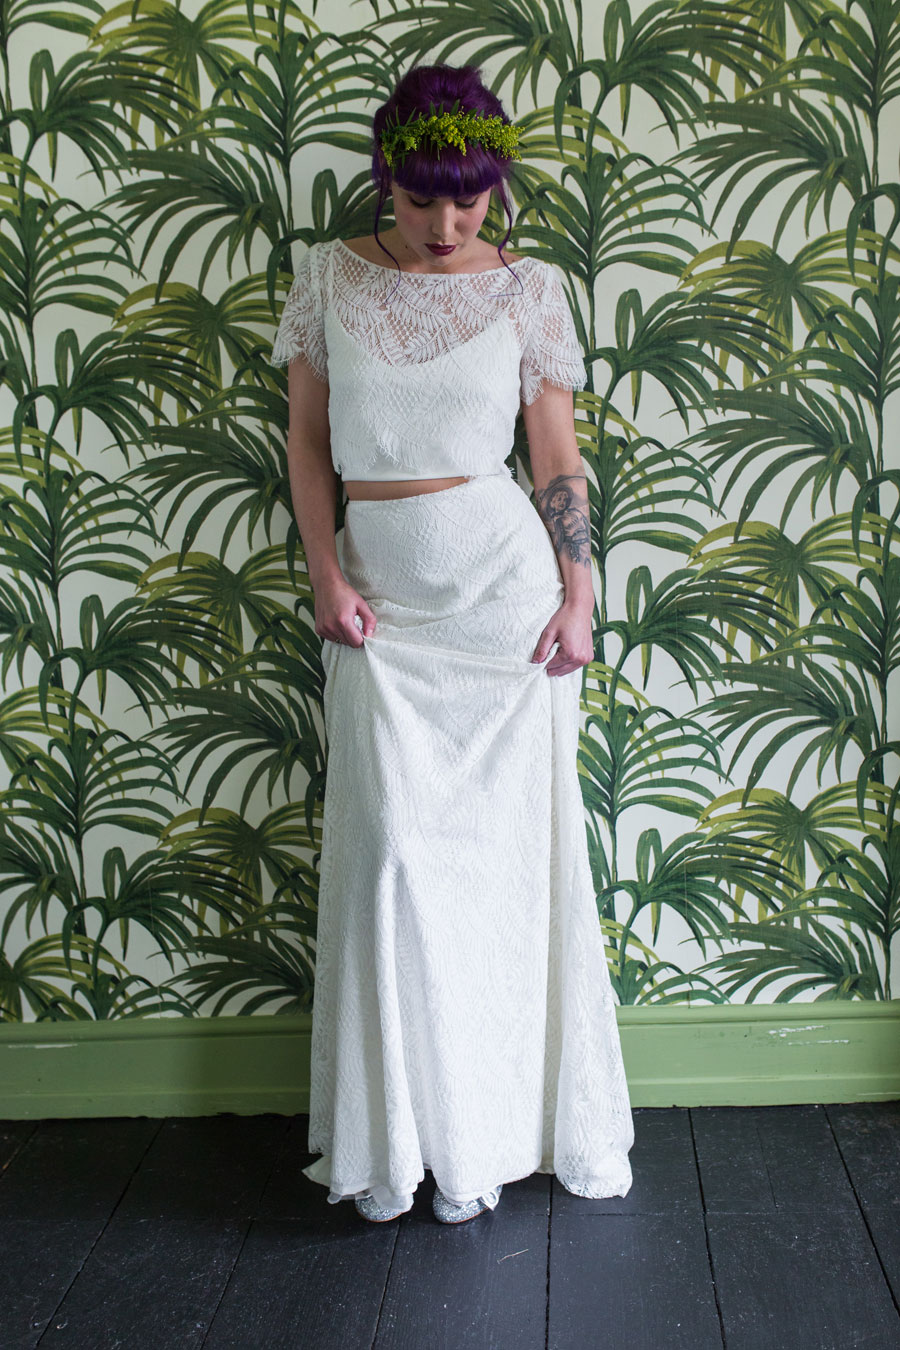 Quirky Wedding Dresses For Non-Traditional Brides- Lucy Can't Dance0015